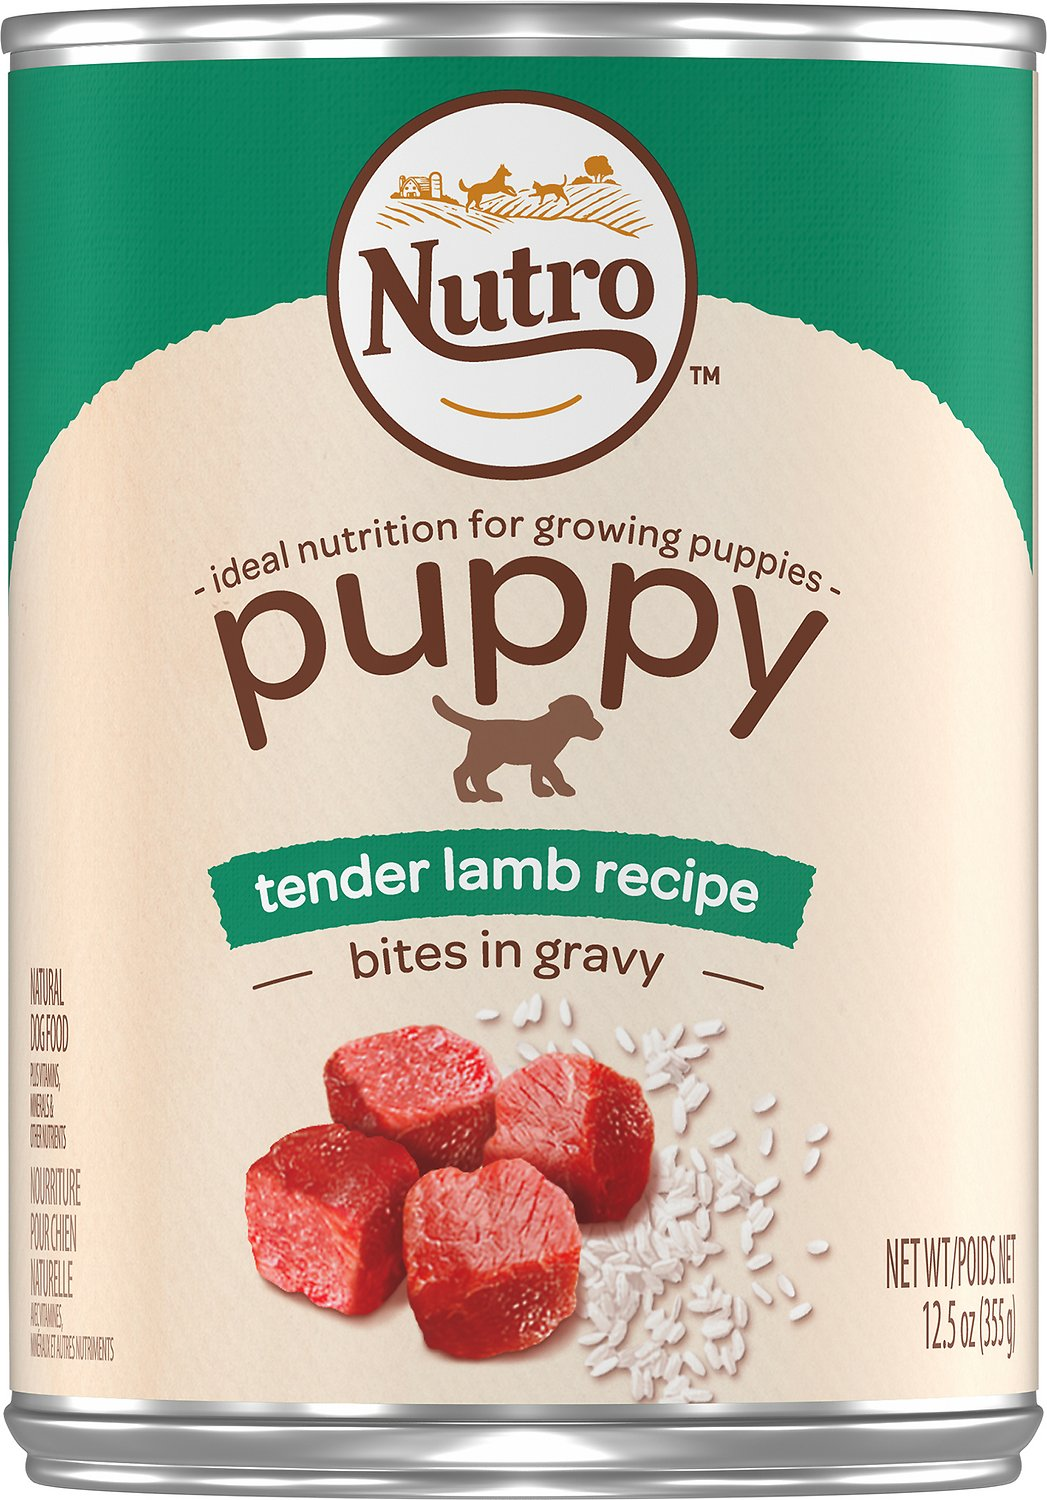 Nutro Large Breed Puppy Tender Lamb Recipe Bites In Gravy Canned Dog Food, 12.5-oz